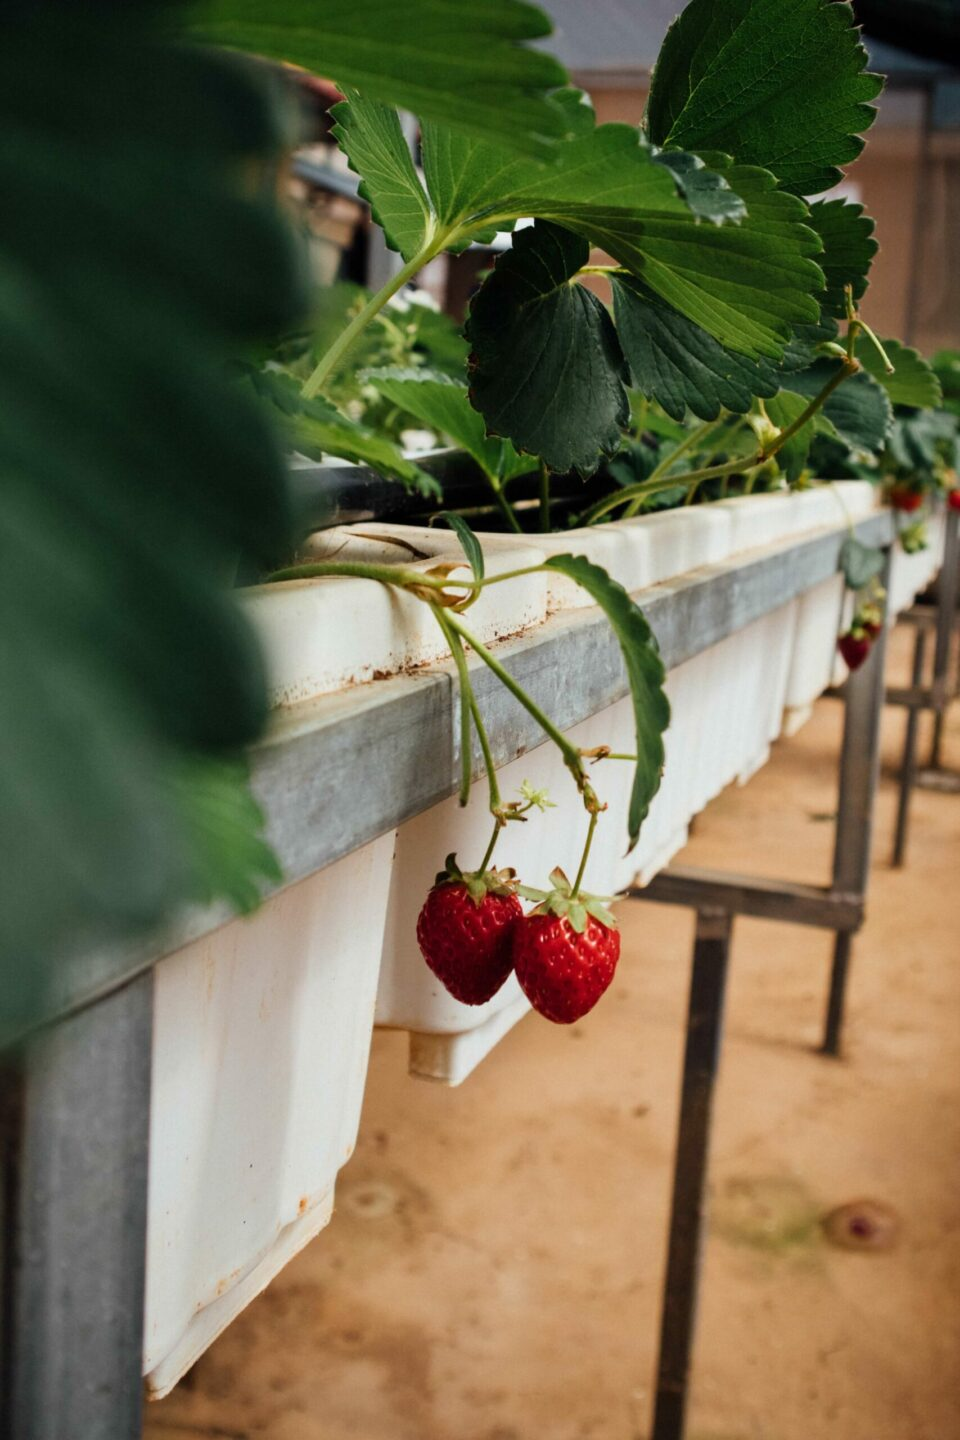 Thinking About Growing Strawberries In A Greenhouse?